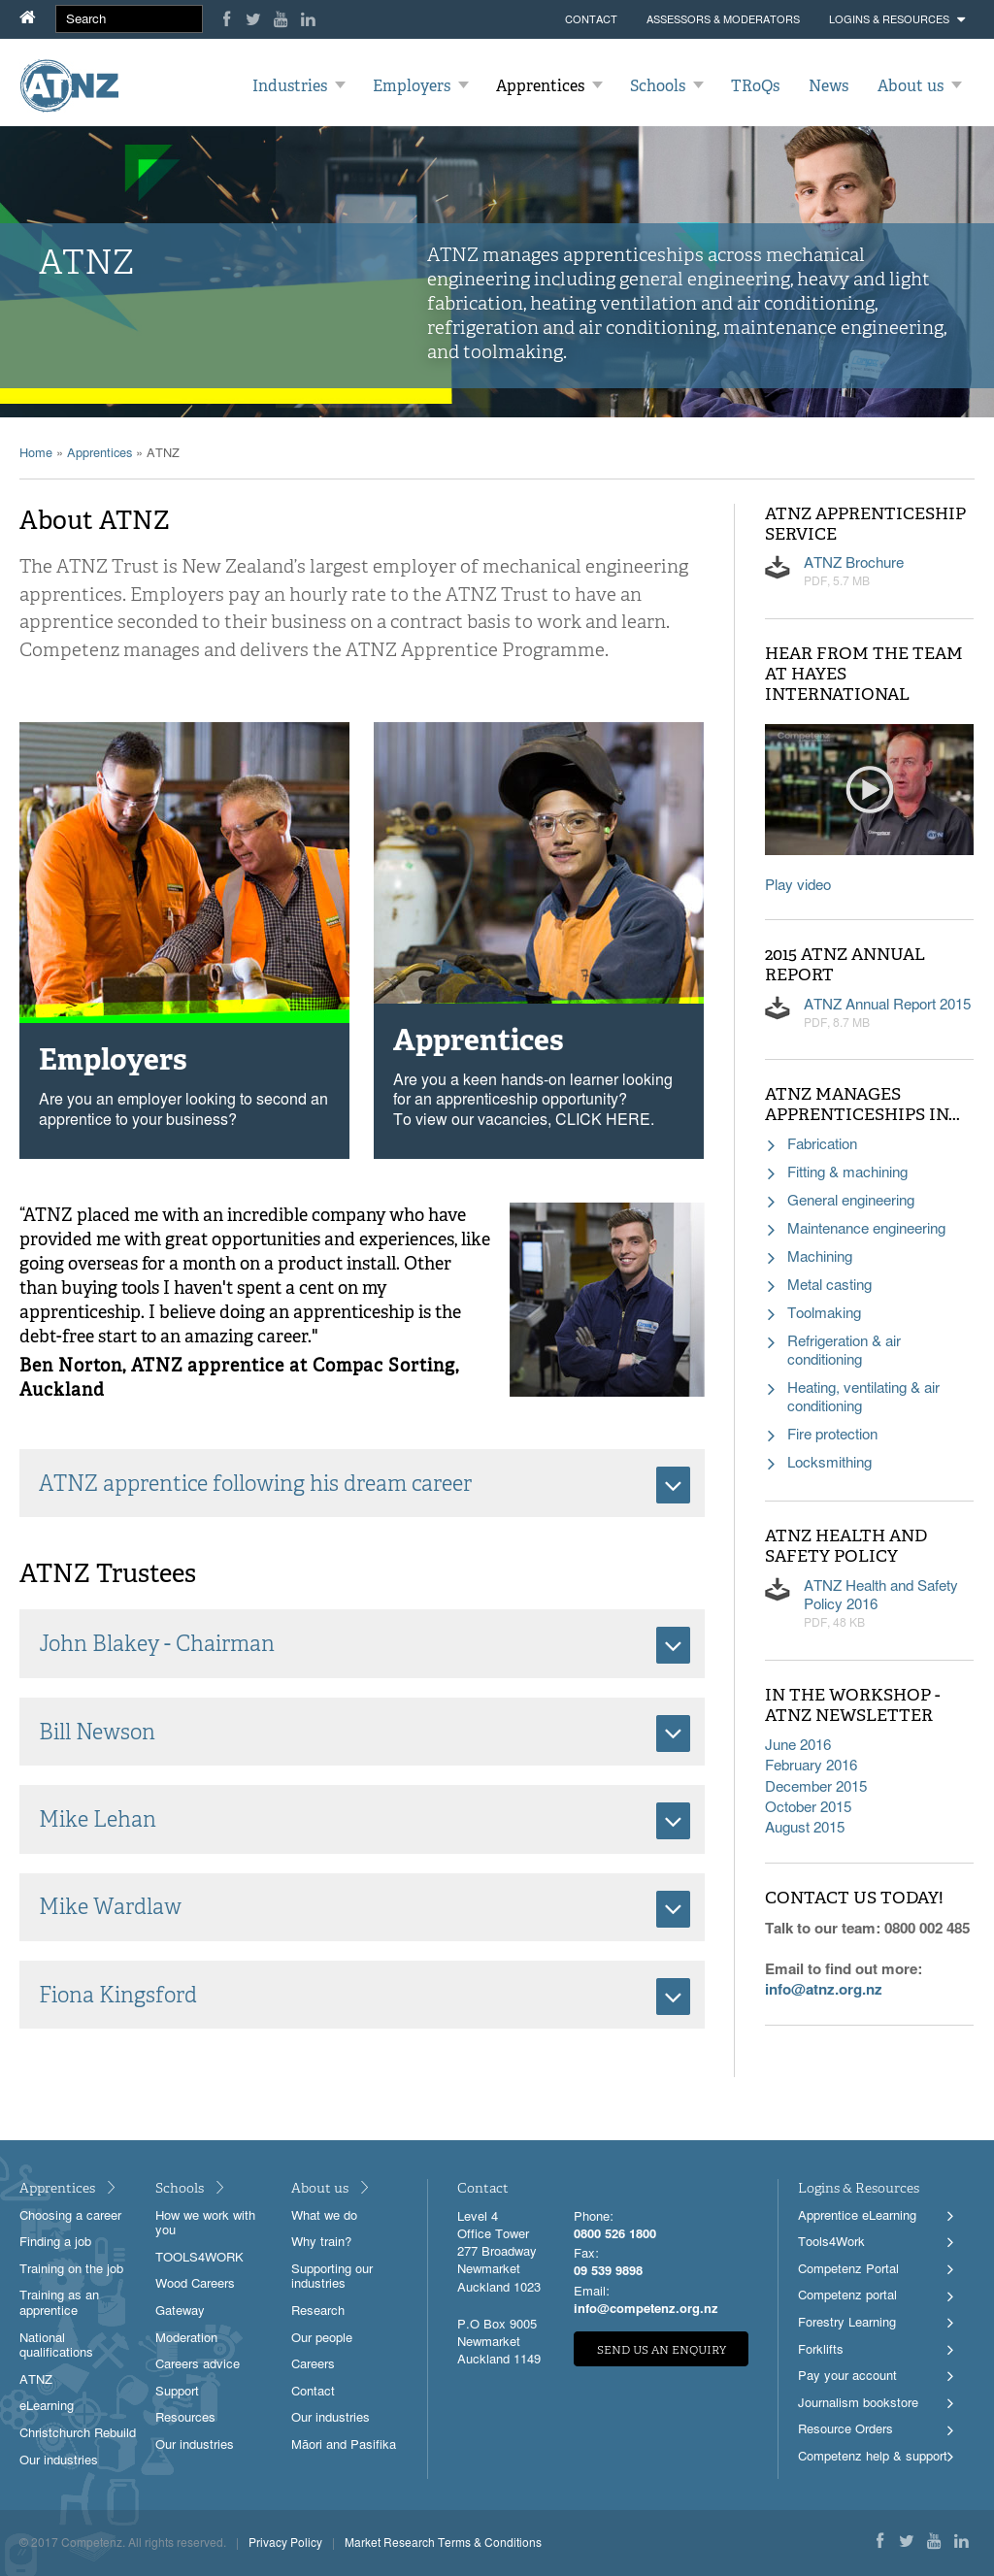 Atnz Competitors, Revenue and Employees - Owler Company Profile